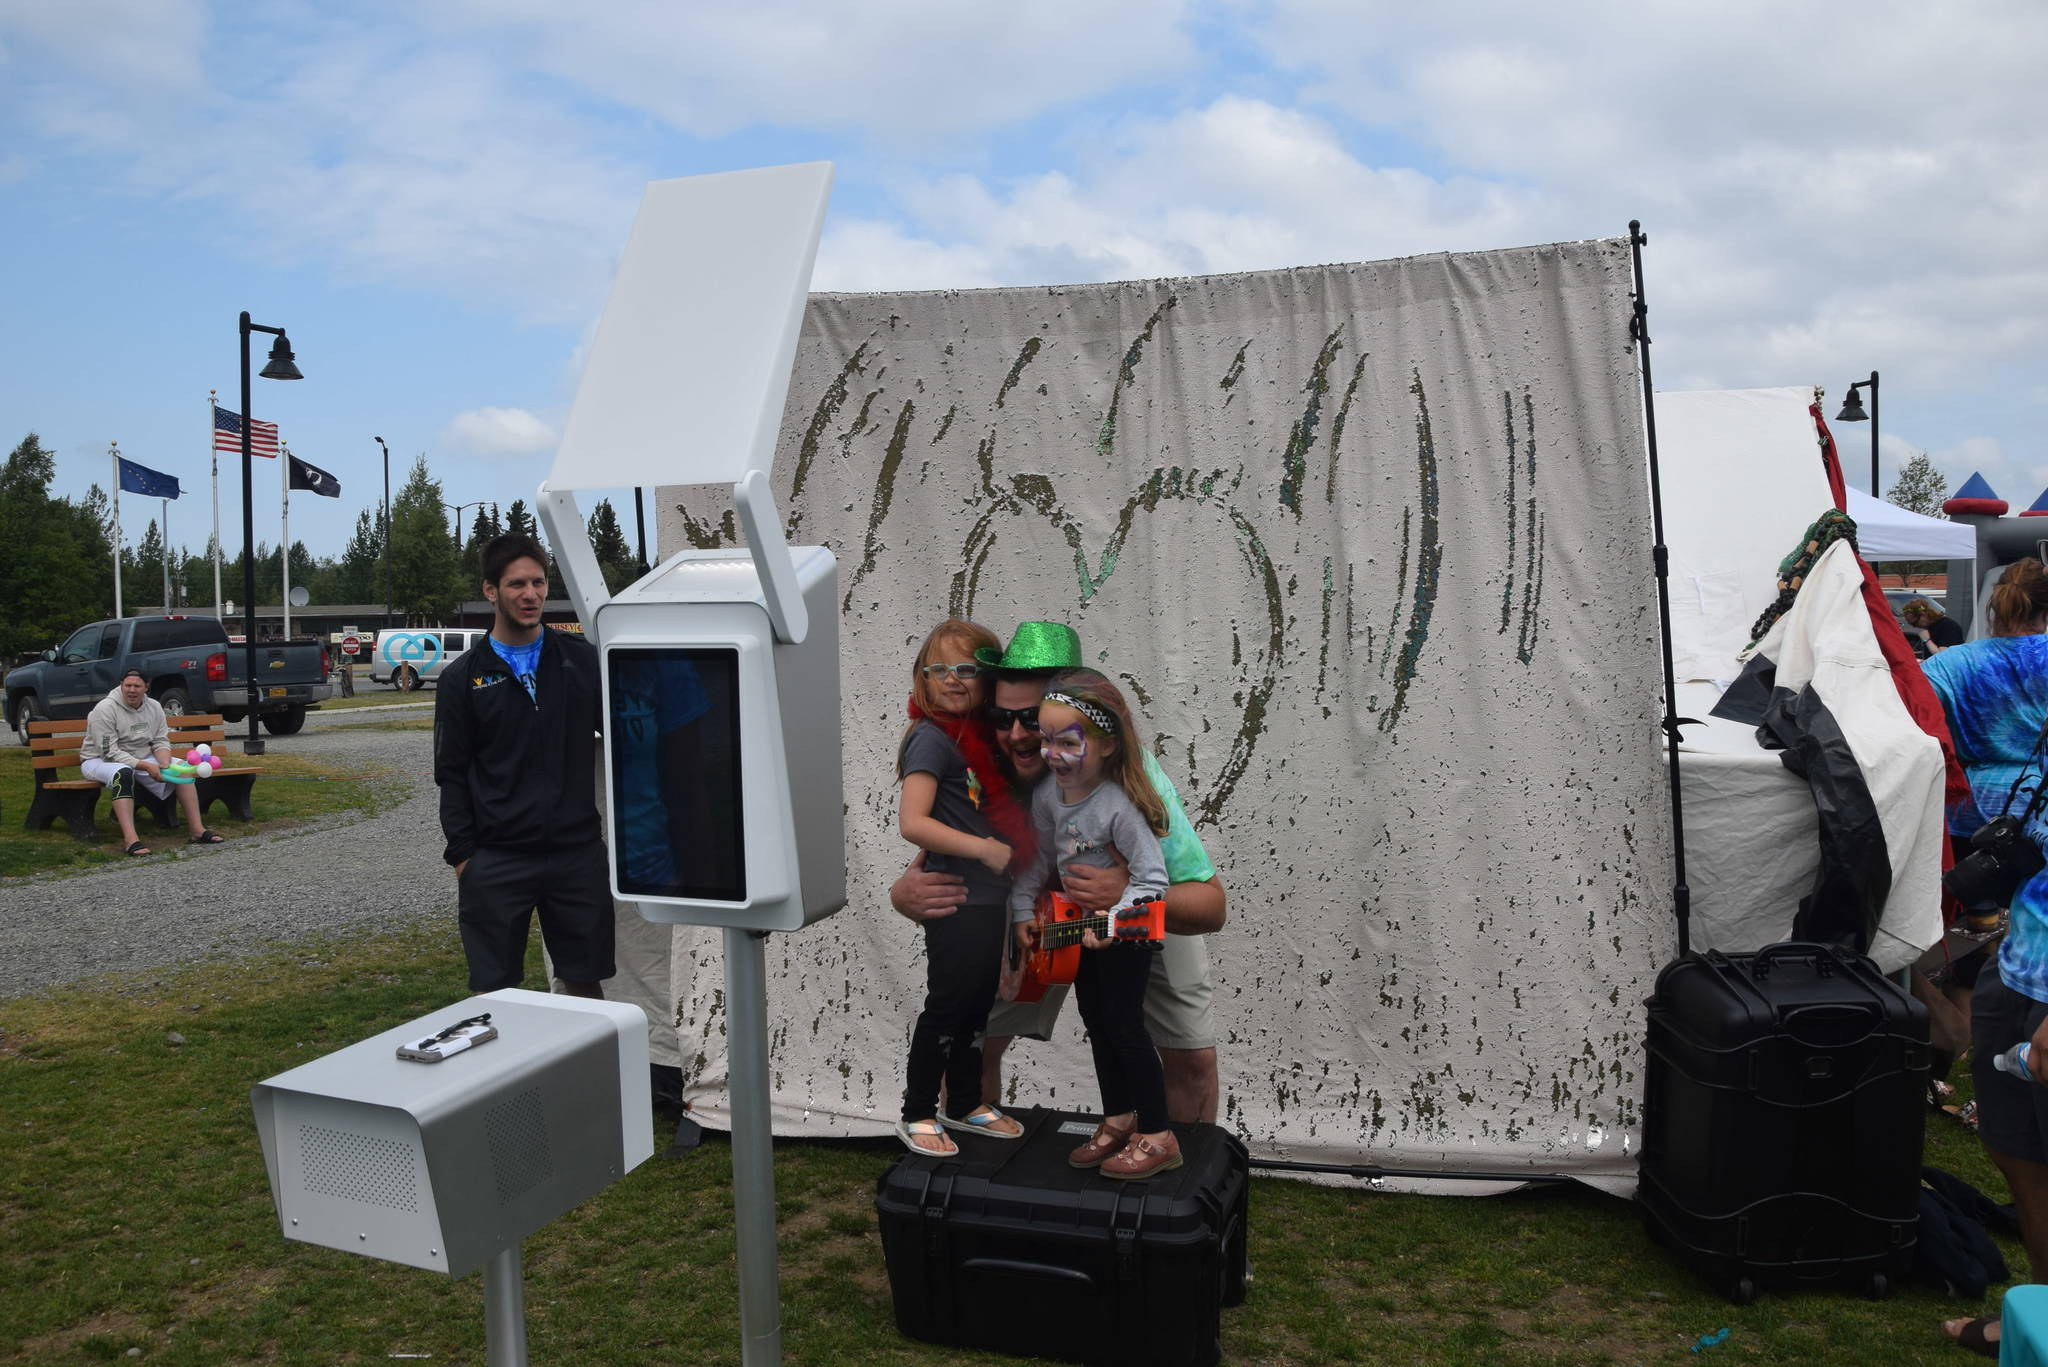 Chris Finley and his daughters Aubree and Danni pose at the photo booth during the 2019 Disability Pride Celebration in Soldotna Creek Park on July 20, 2019. (Photo by Brian Mazurek/Peninsula Clarion)